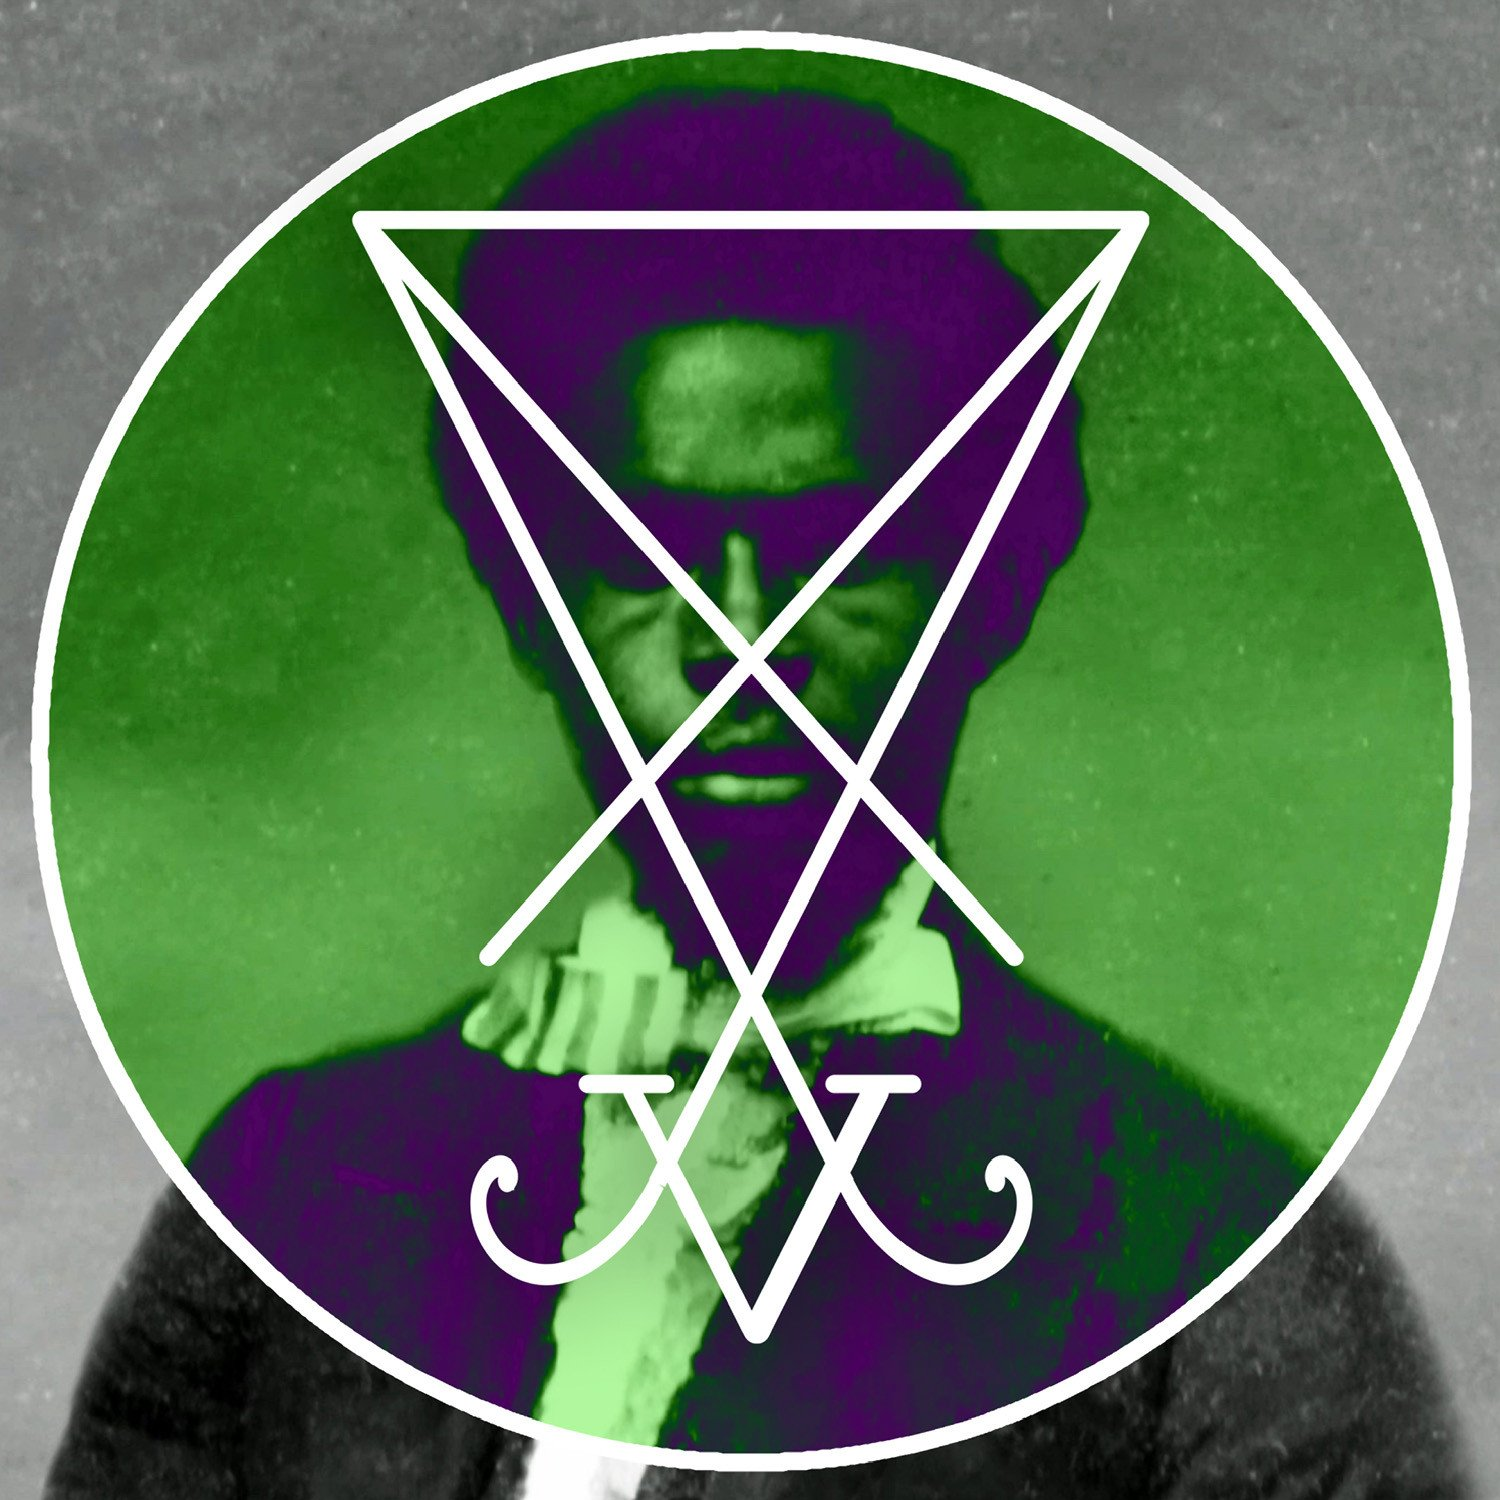 Devil Is Fine is the debut studio album by Manuel Gagneux, under his alias Zeal & Ardor.